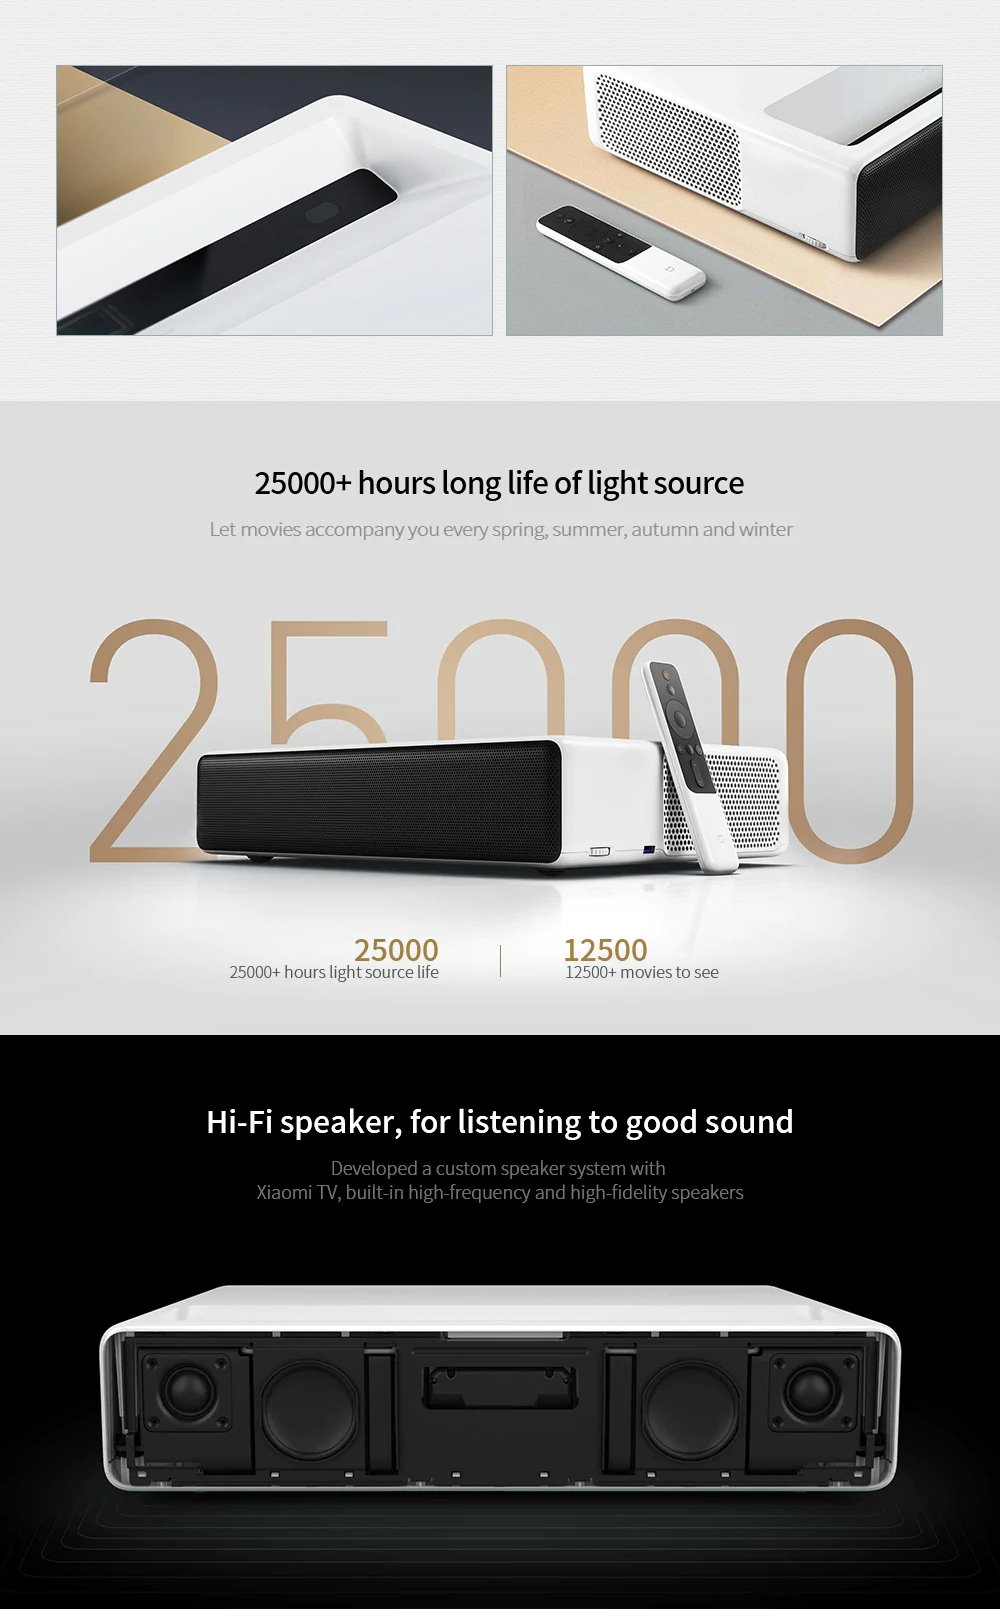 Xiaomi Mi MIJIA Laser Projector 5000 Lumens Android 6.0 ALPD 3.0 4K 2GB 16GB bluetooth Prejector English Version